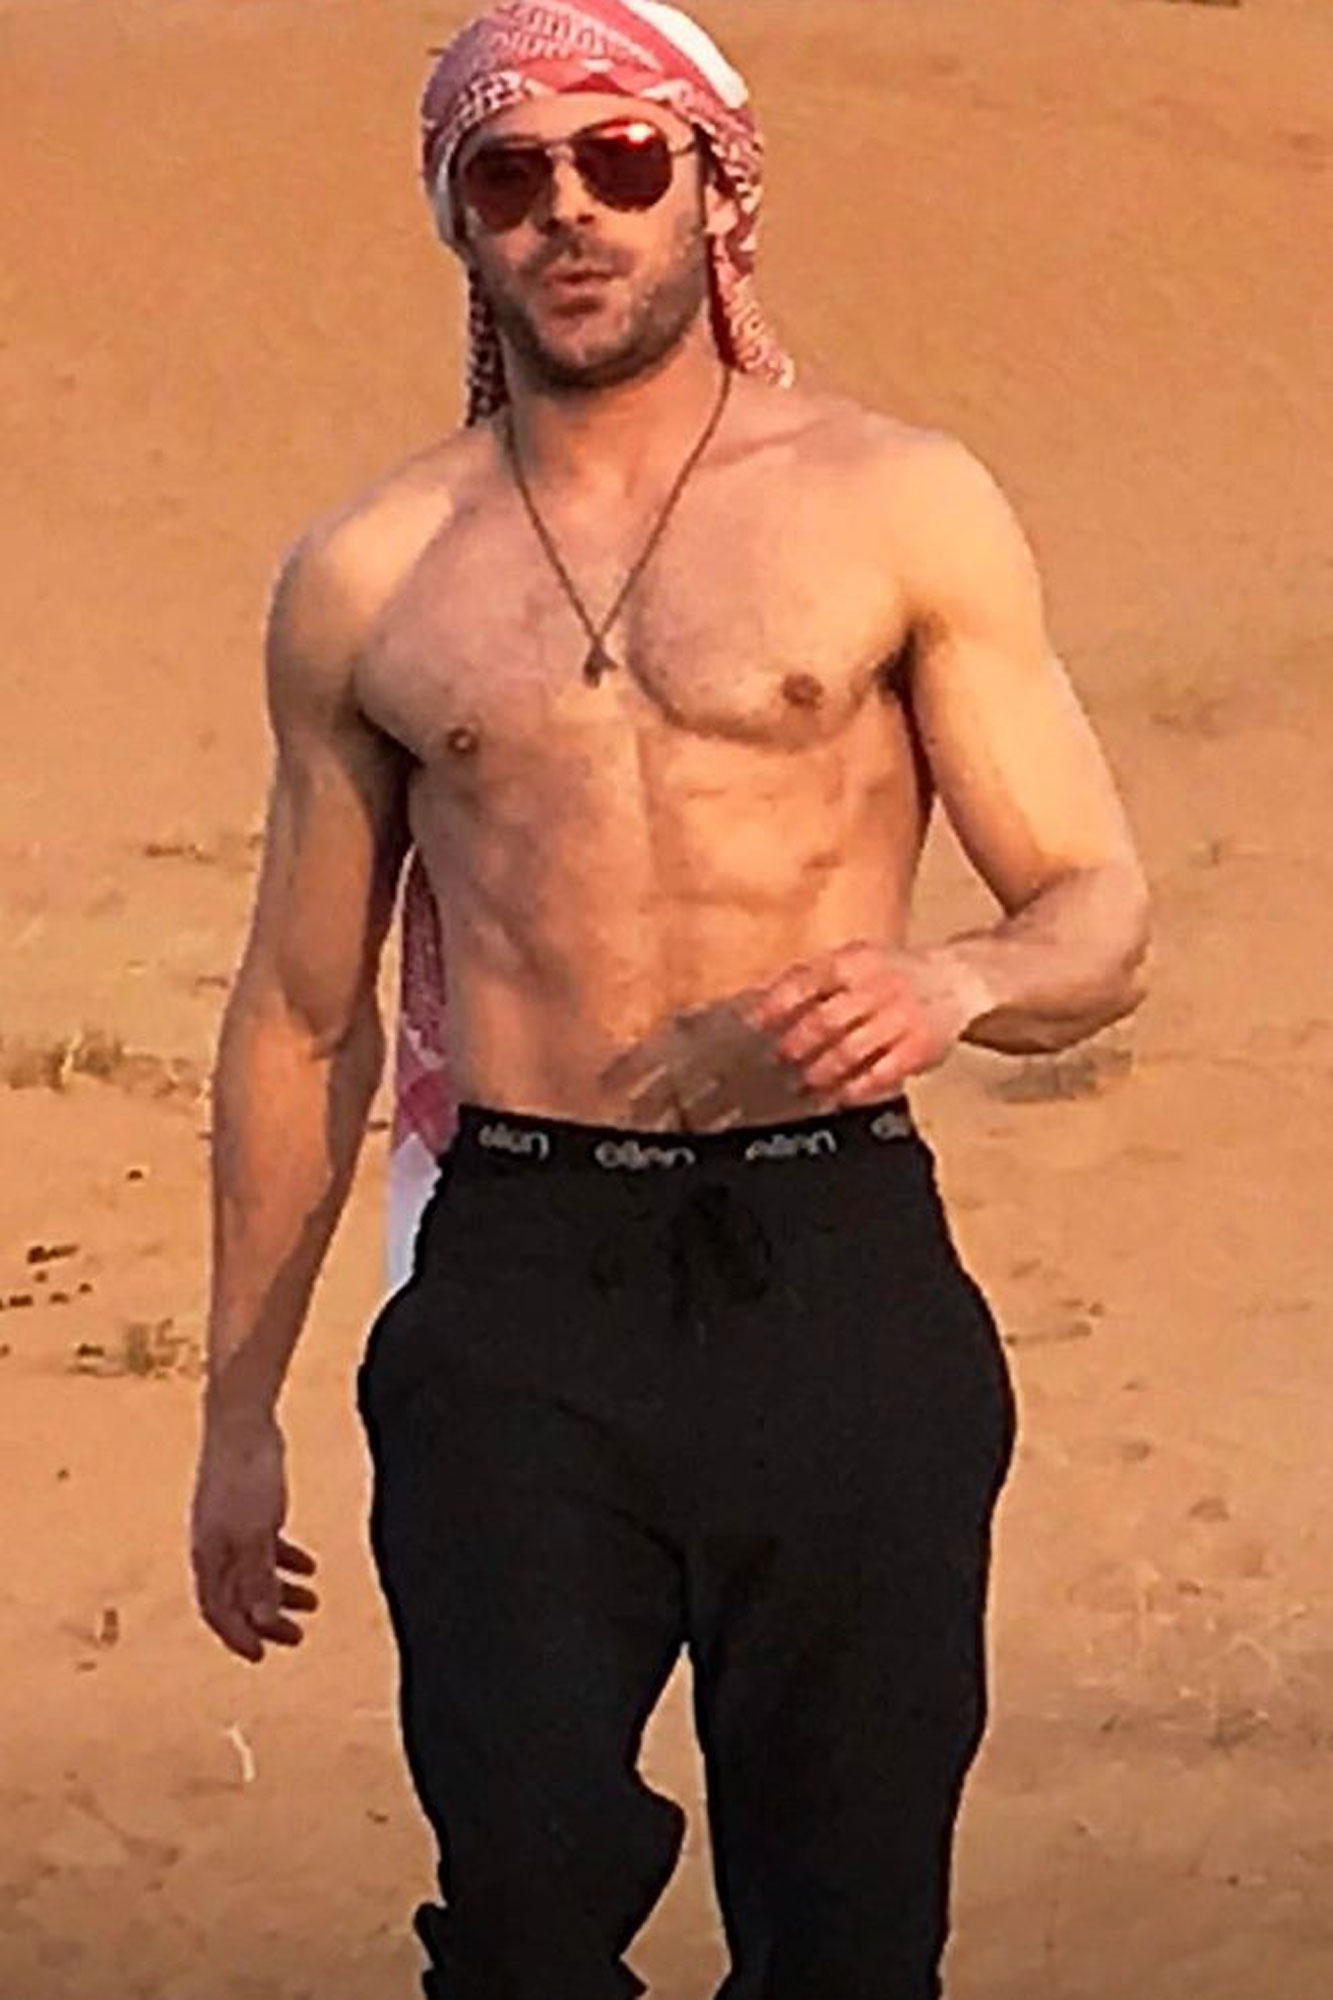 Zac Efron posts pictures of himself in the desert.Source: Zac Efron Instagram